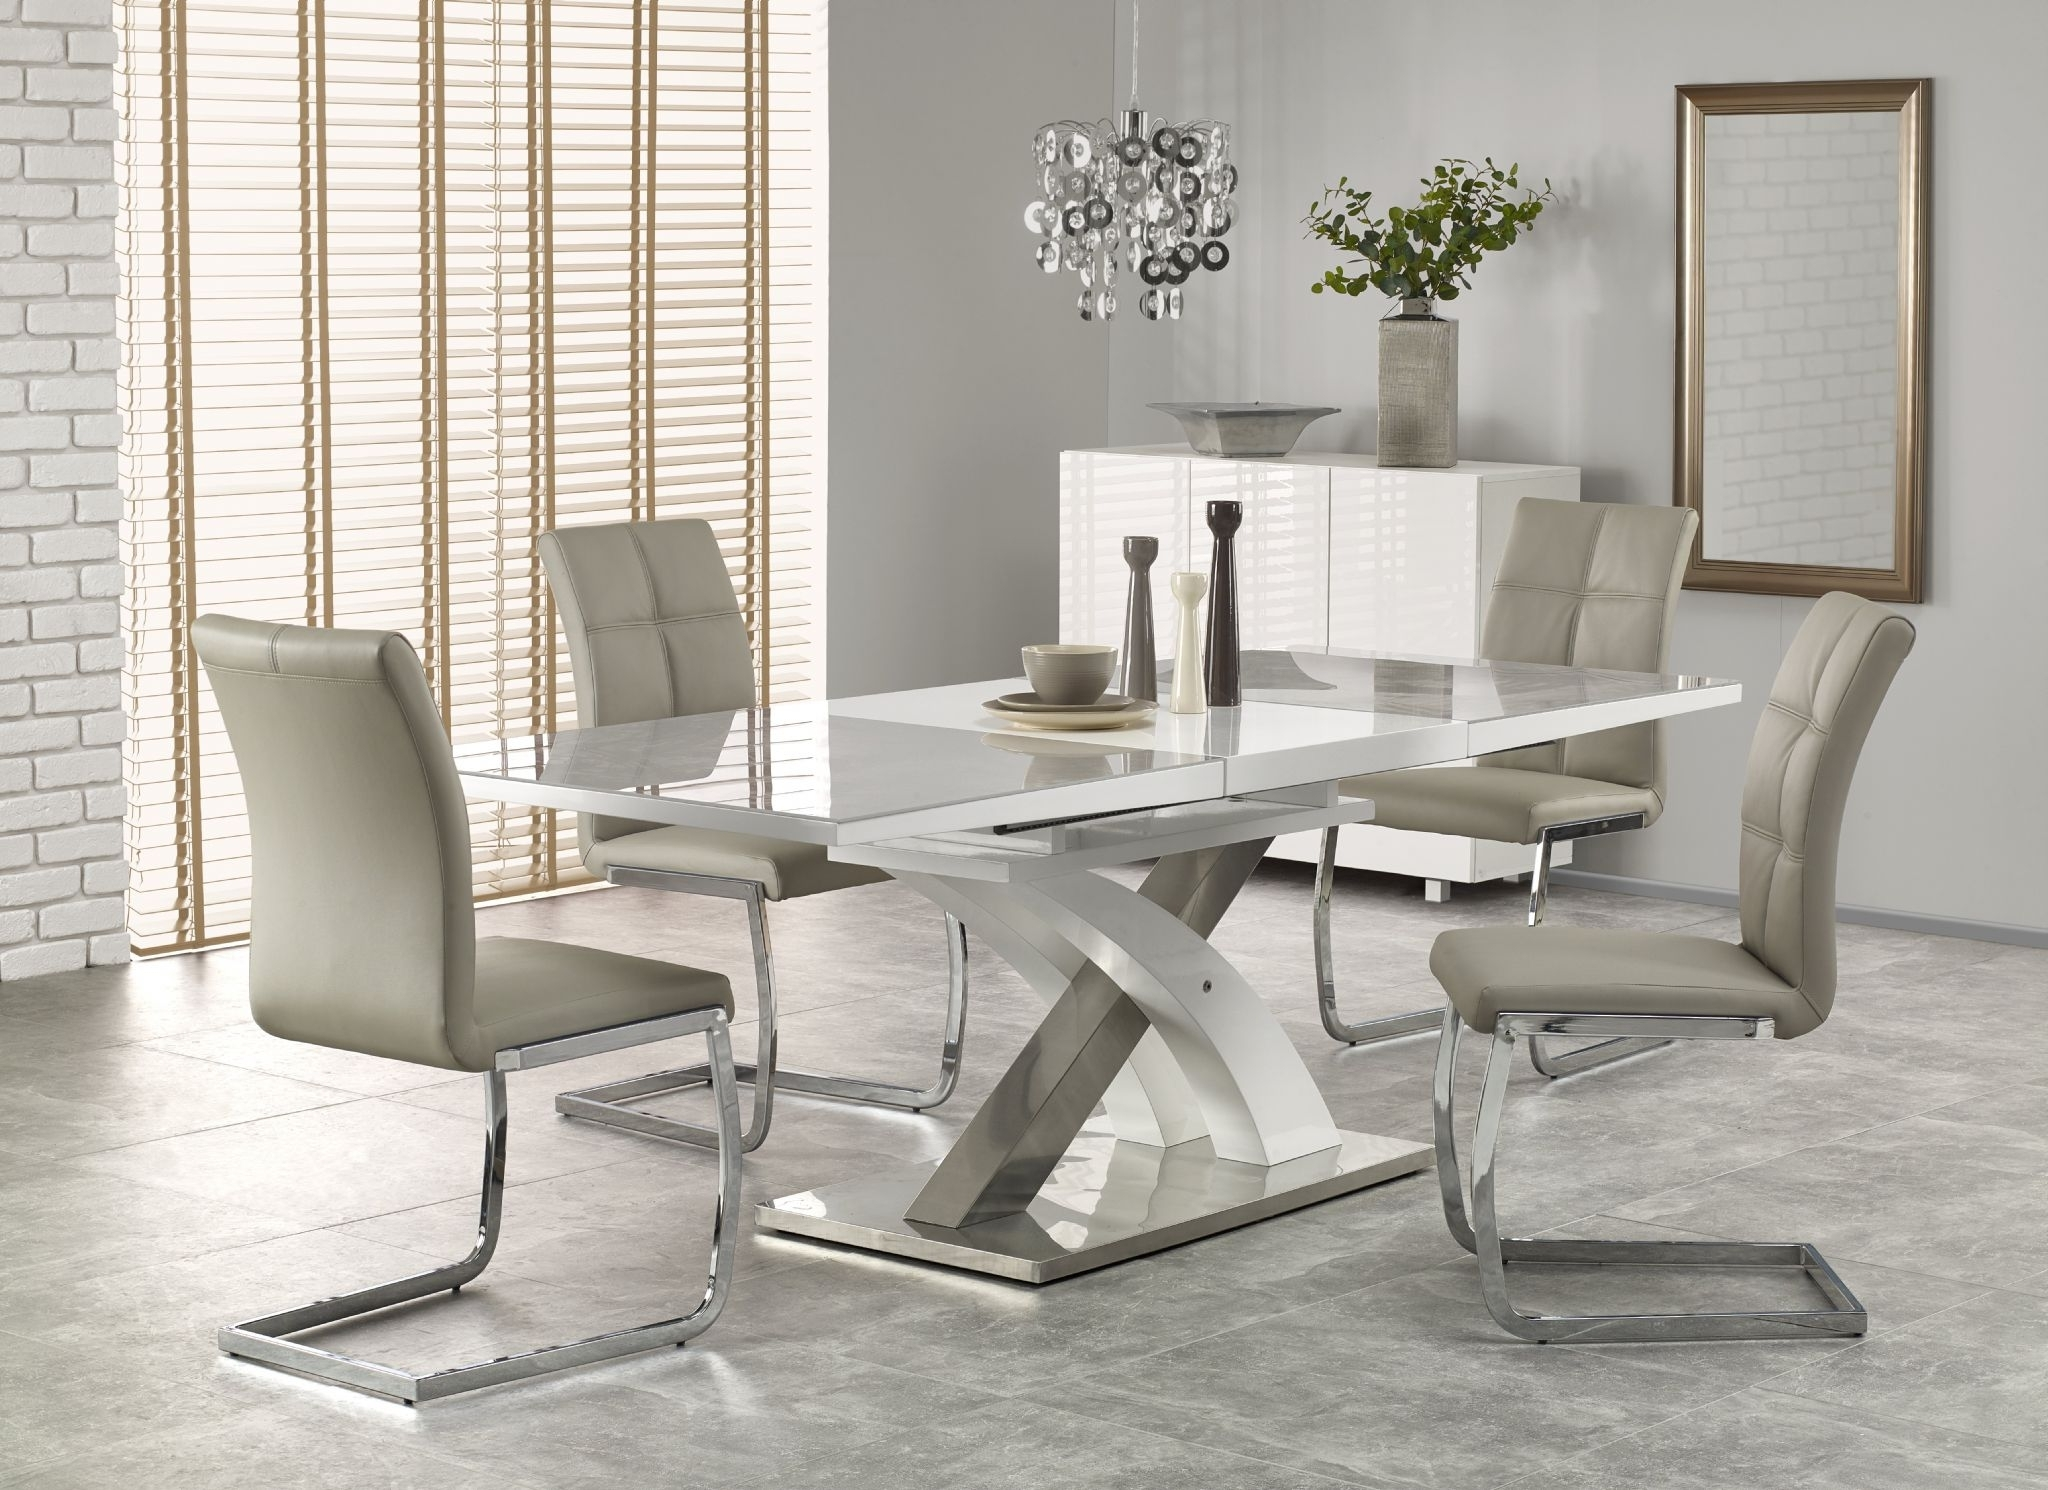 2017 White Gloss And Glass Dining Tables With Regard To Harmony White High Gloss & Grey Glass Extendable Dining Table (View 21 of 25)